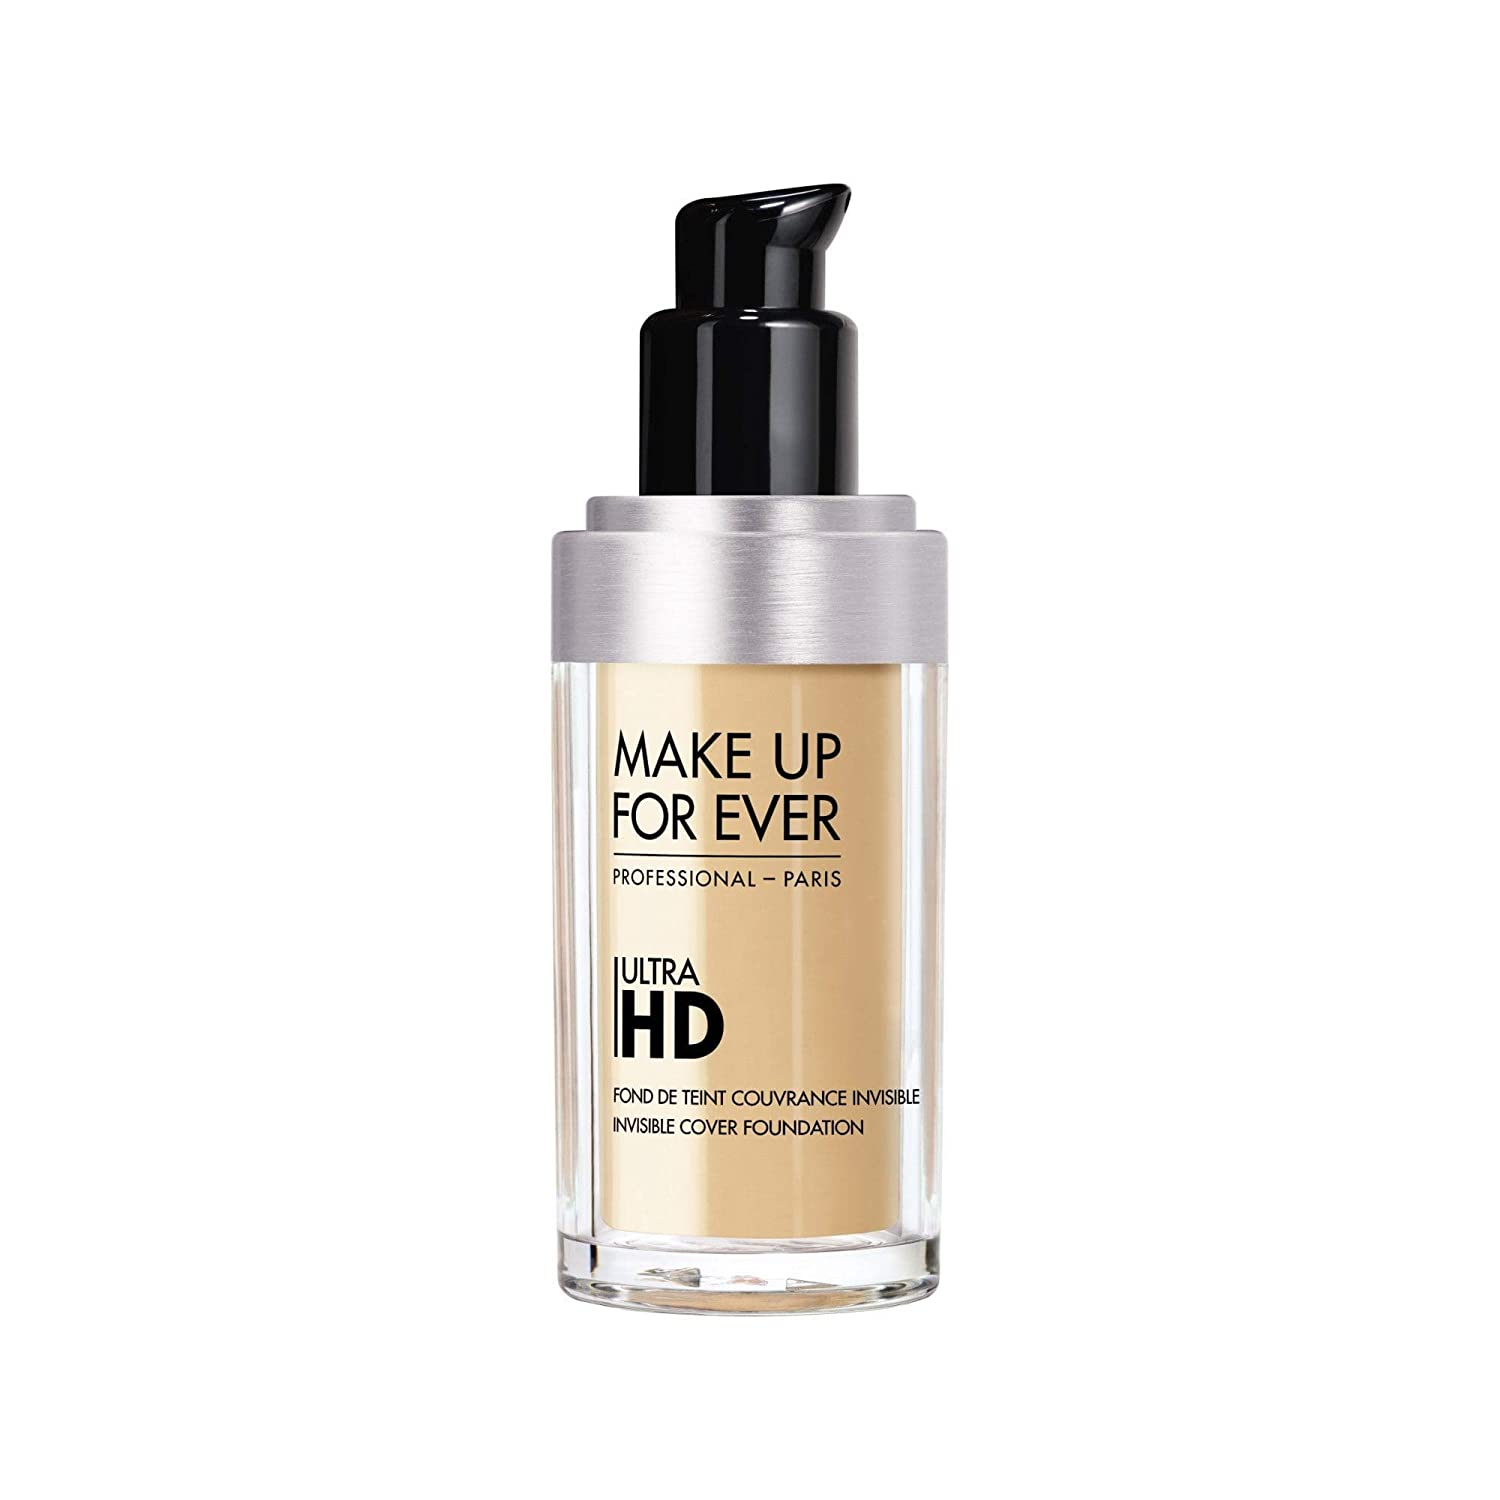 MAKE UP FOR EVER Ultra HD Foundation - Invisible Cover Foundation 30ml Y225 - Marble